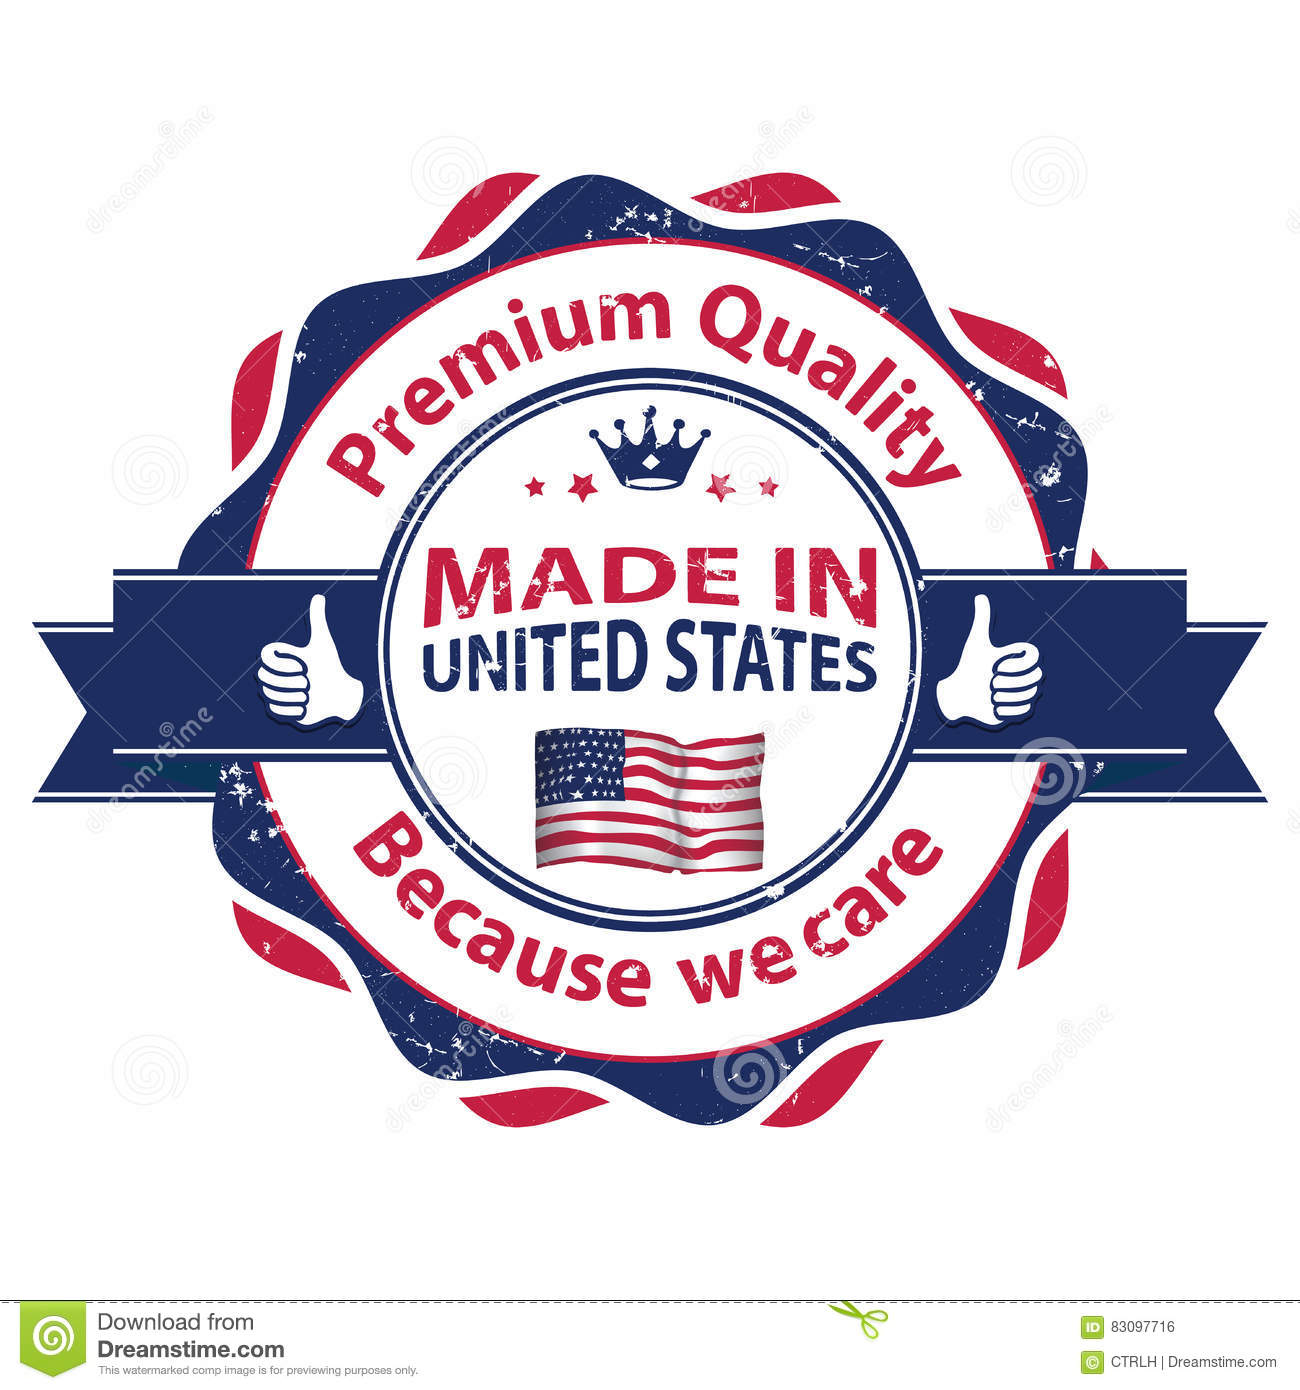 Made in usa premium quality because we care stock photo image made in usa premium quality because we care royalty free stock photo download made in usa buycottarizona